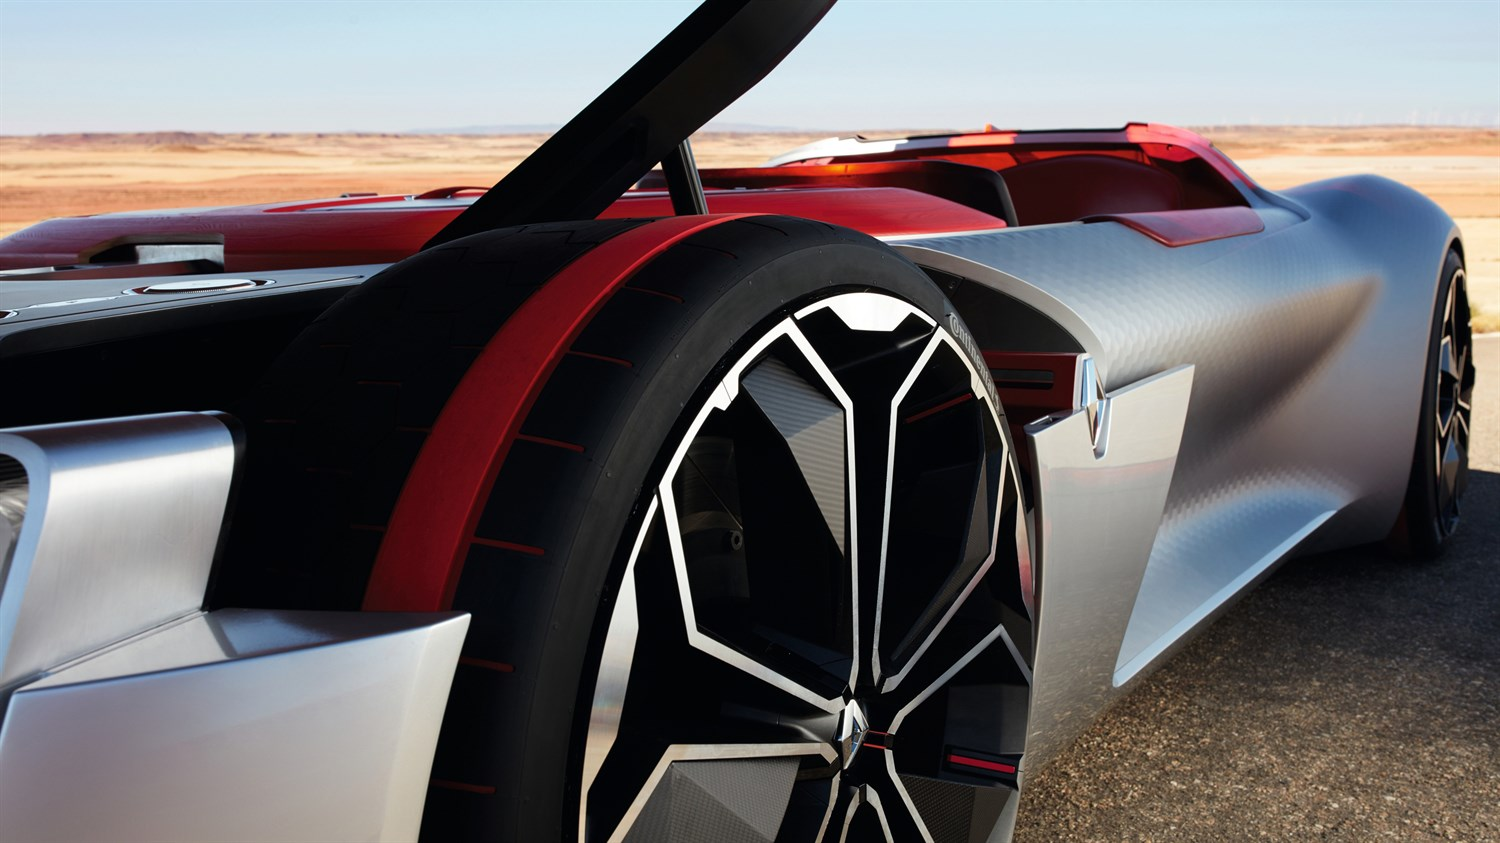 Renault TREZOR concept car wheel close up picture